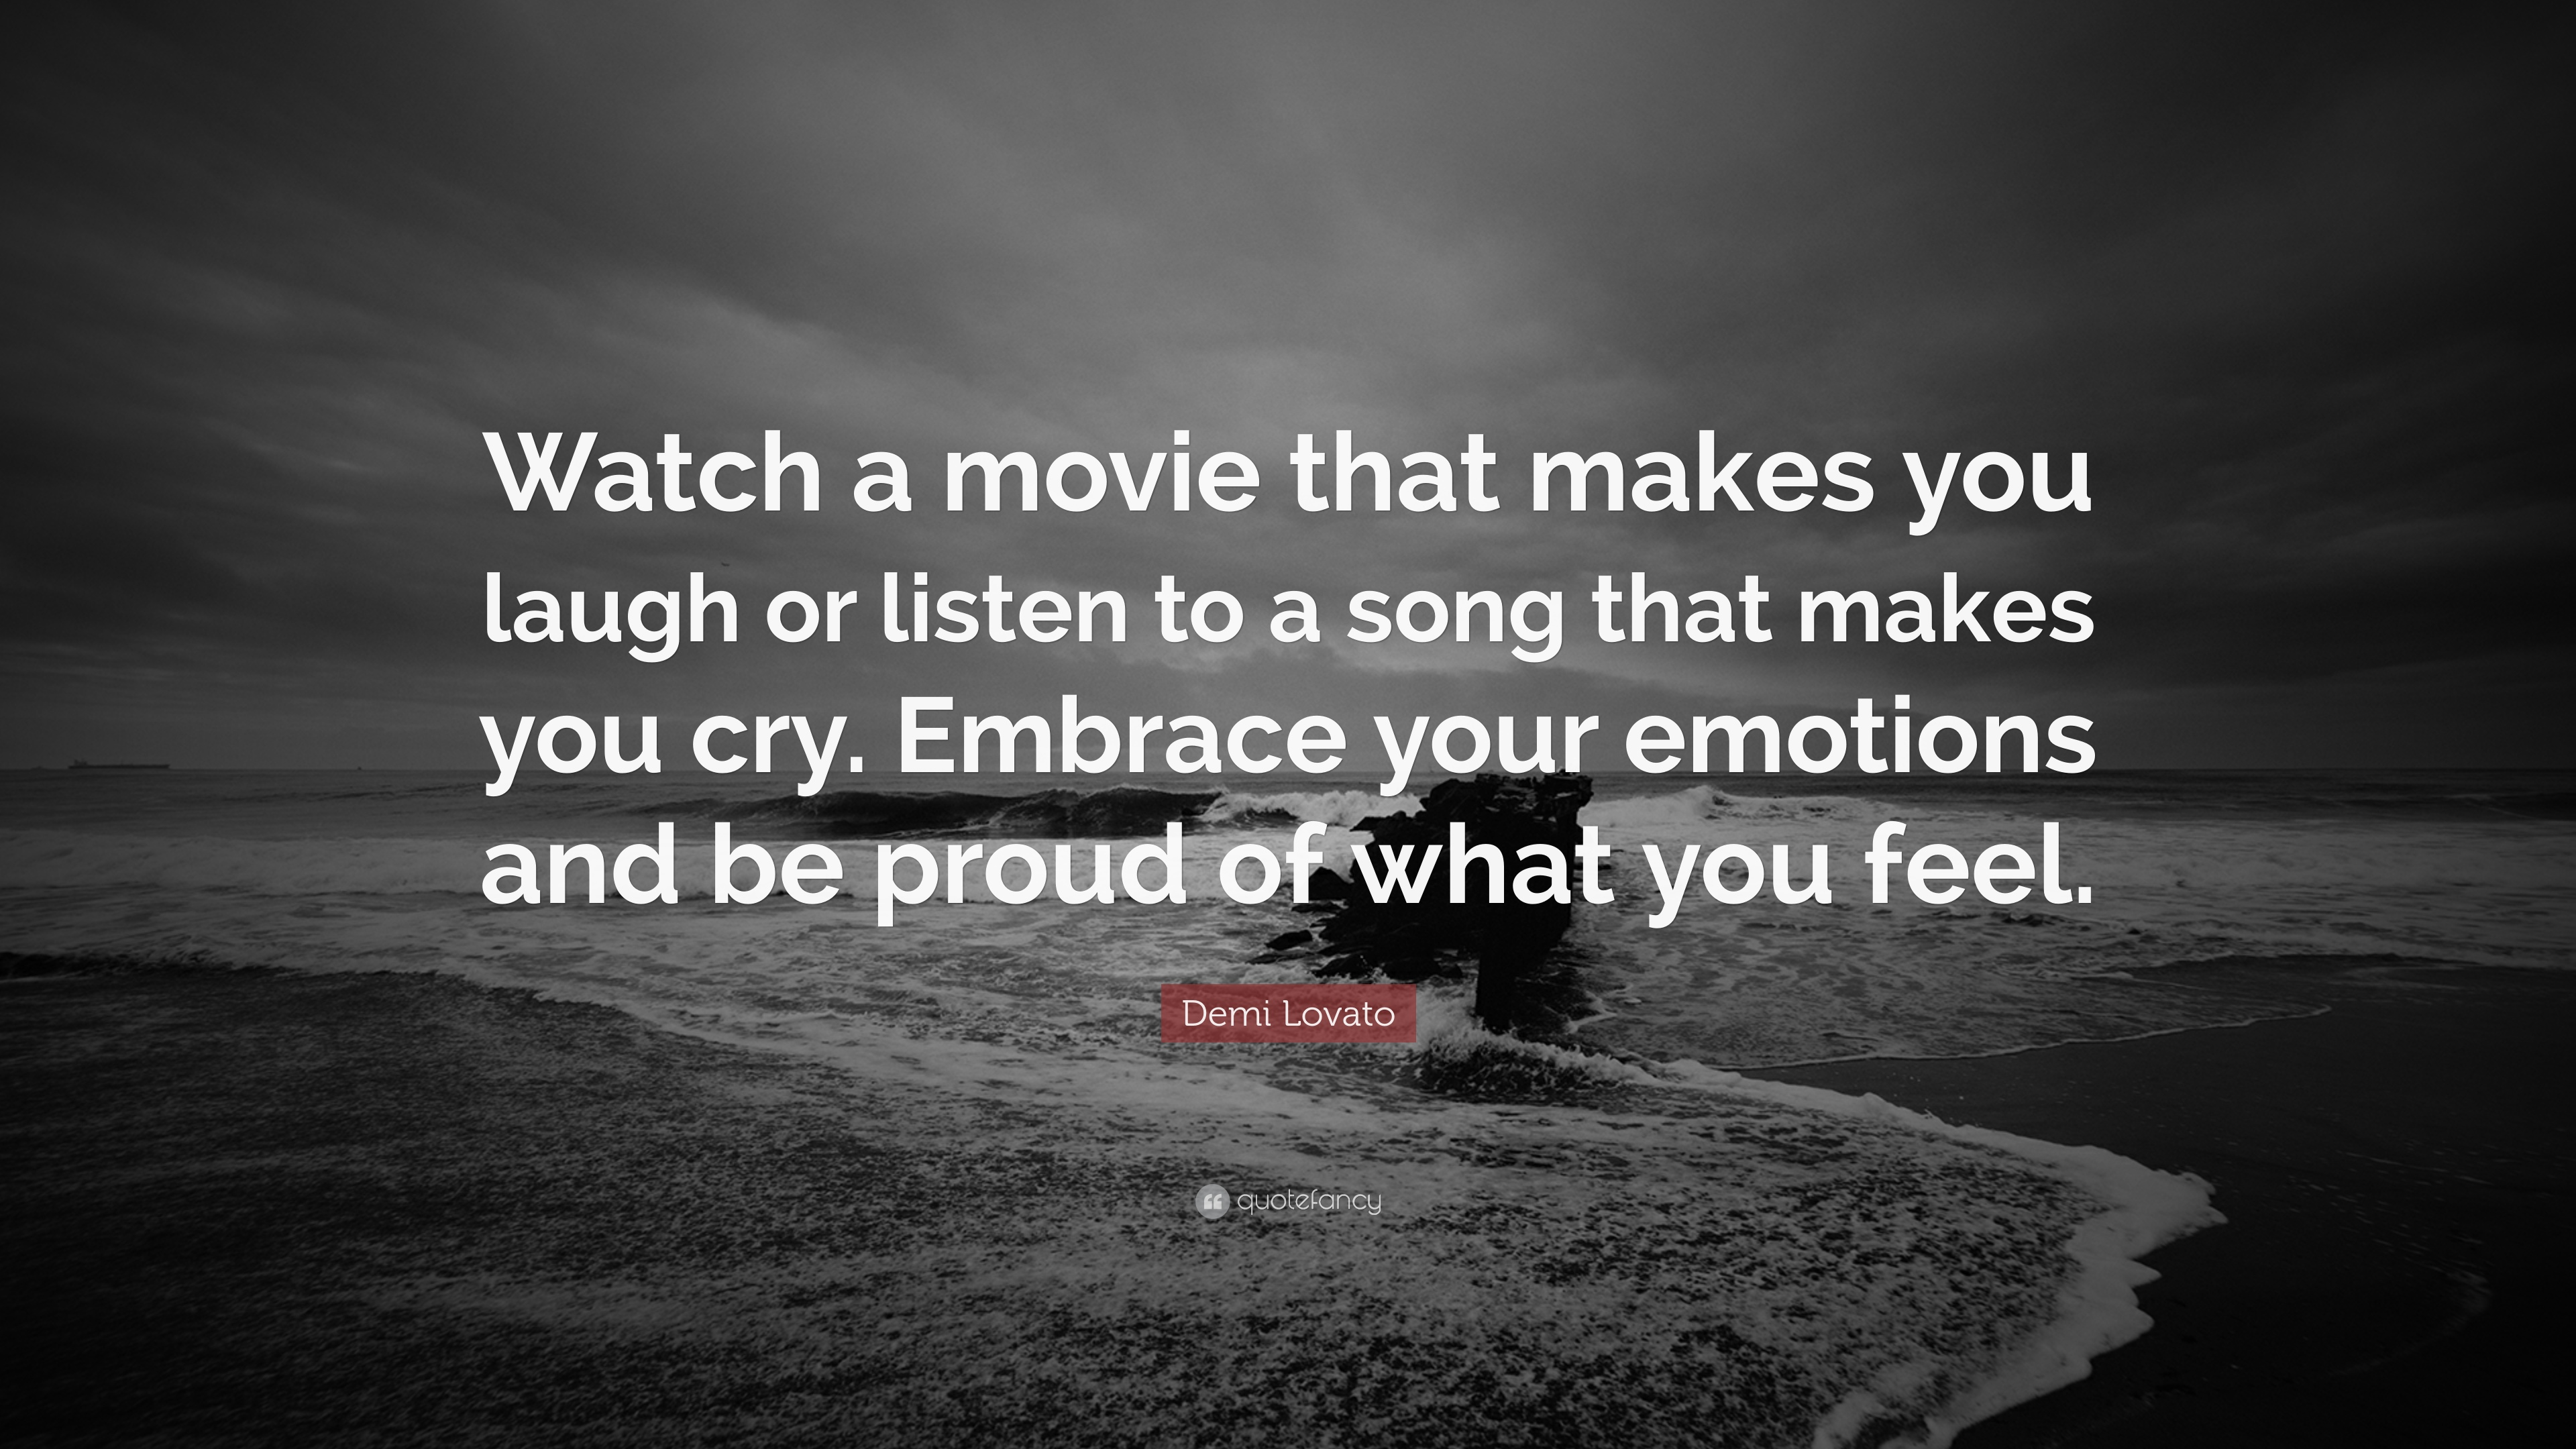 demi lovato quote watch a movie that makes you laugh or